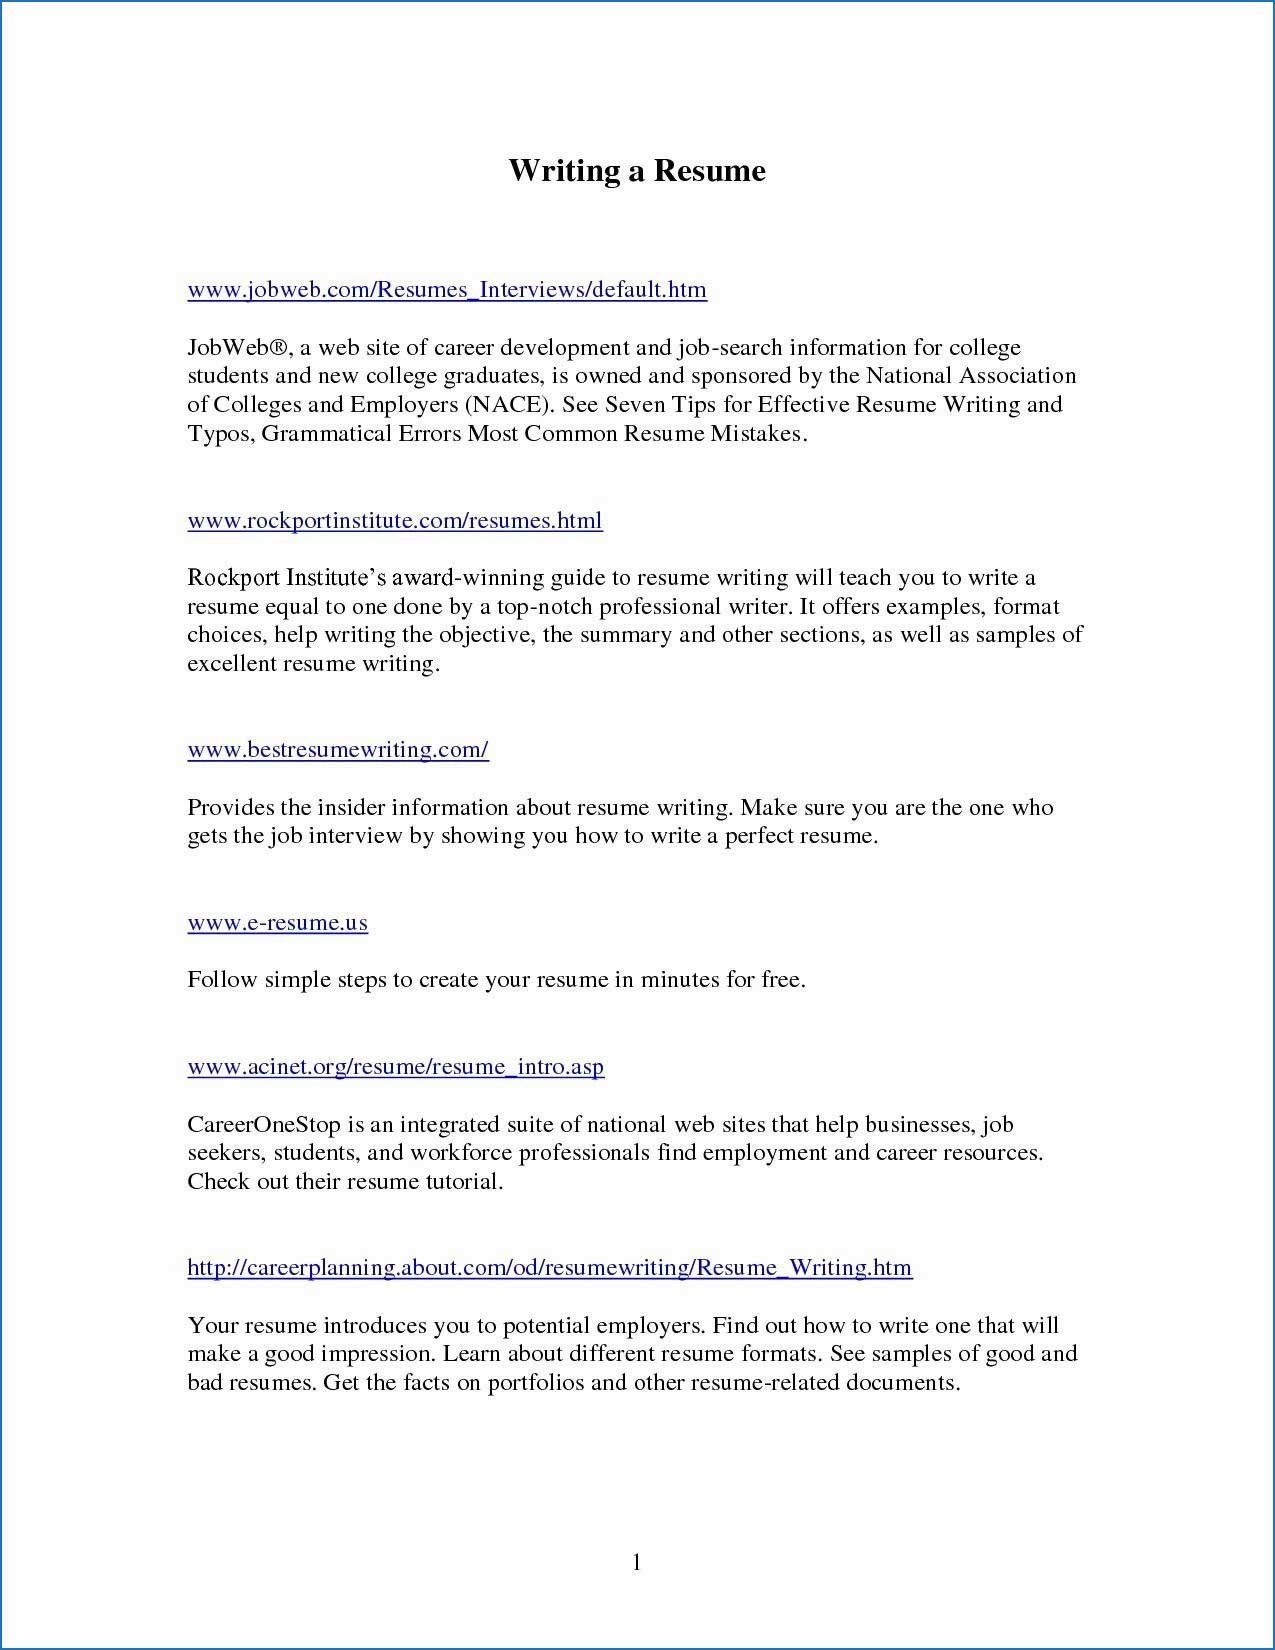 Can My Resume Be 2 Pages Can A Resume Be 2 Pages 650 841 Can A Resume Be 2 Pages Resume Template Examples Resume Writing Services Resume Writing